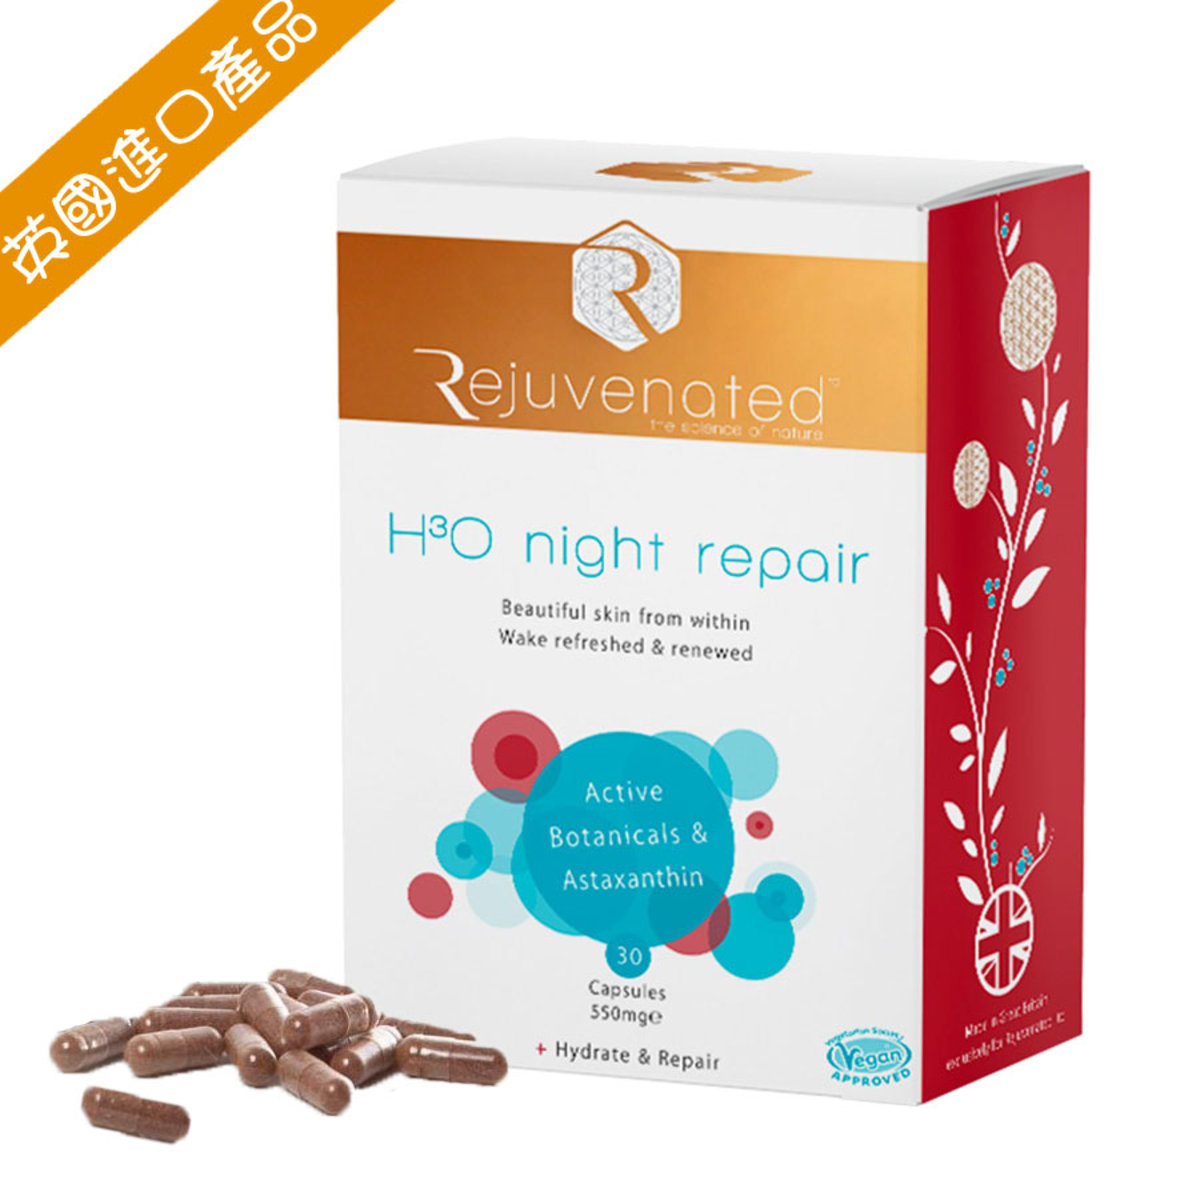 REJUVENATED LTD H3O Night Repair (30 drops) ) For Vegeterian